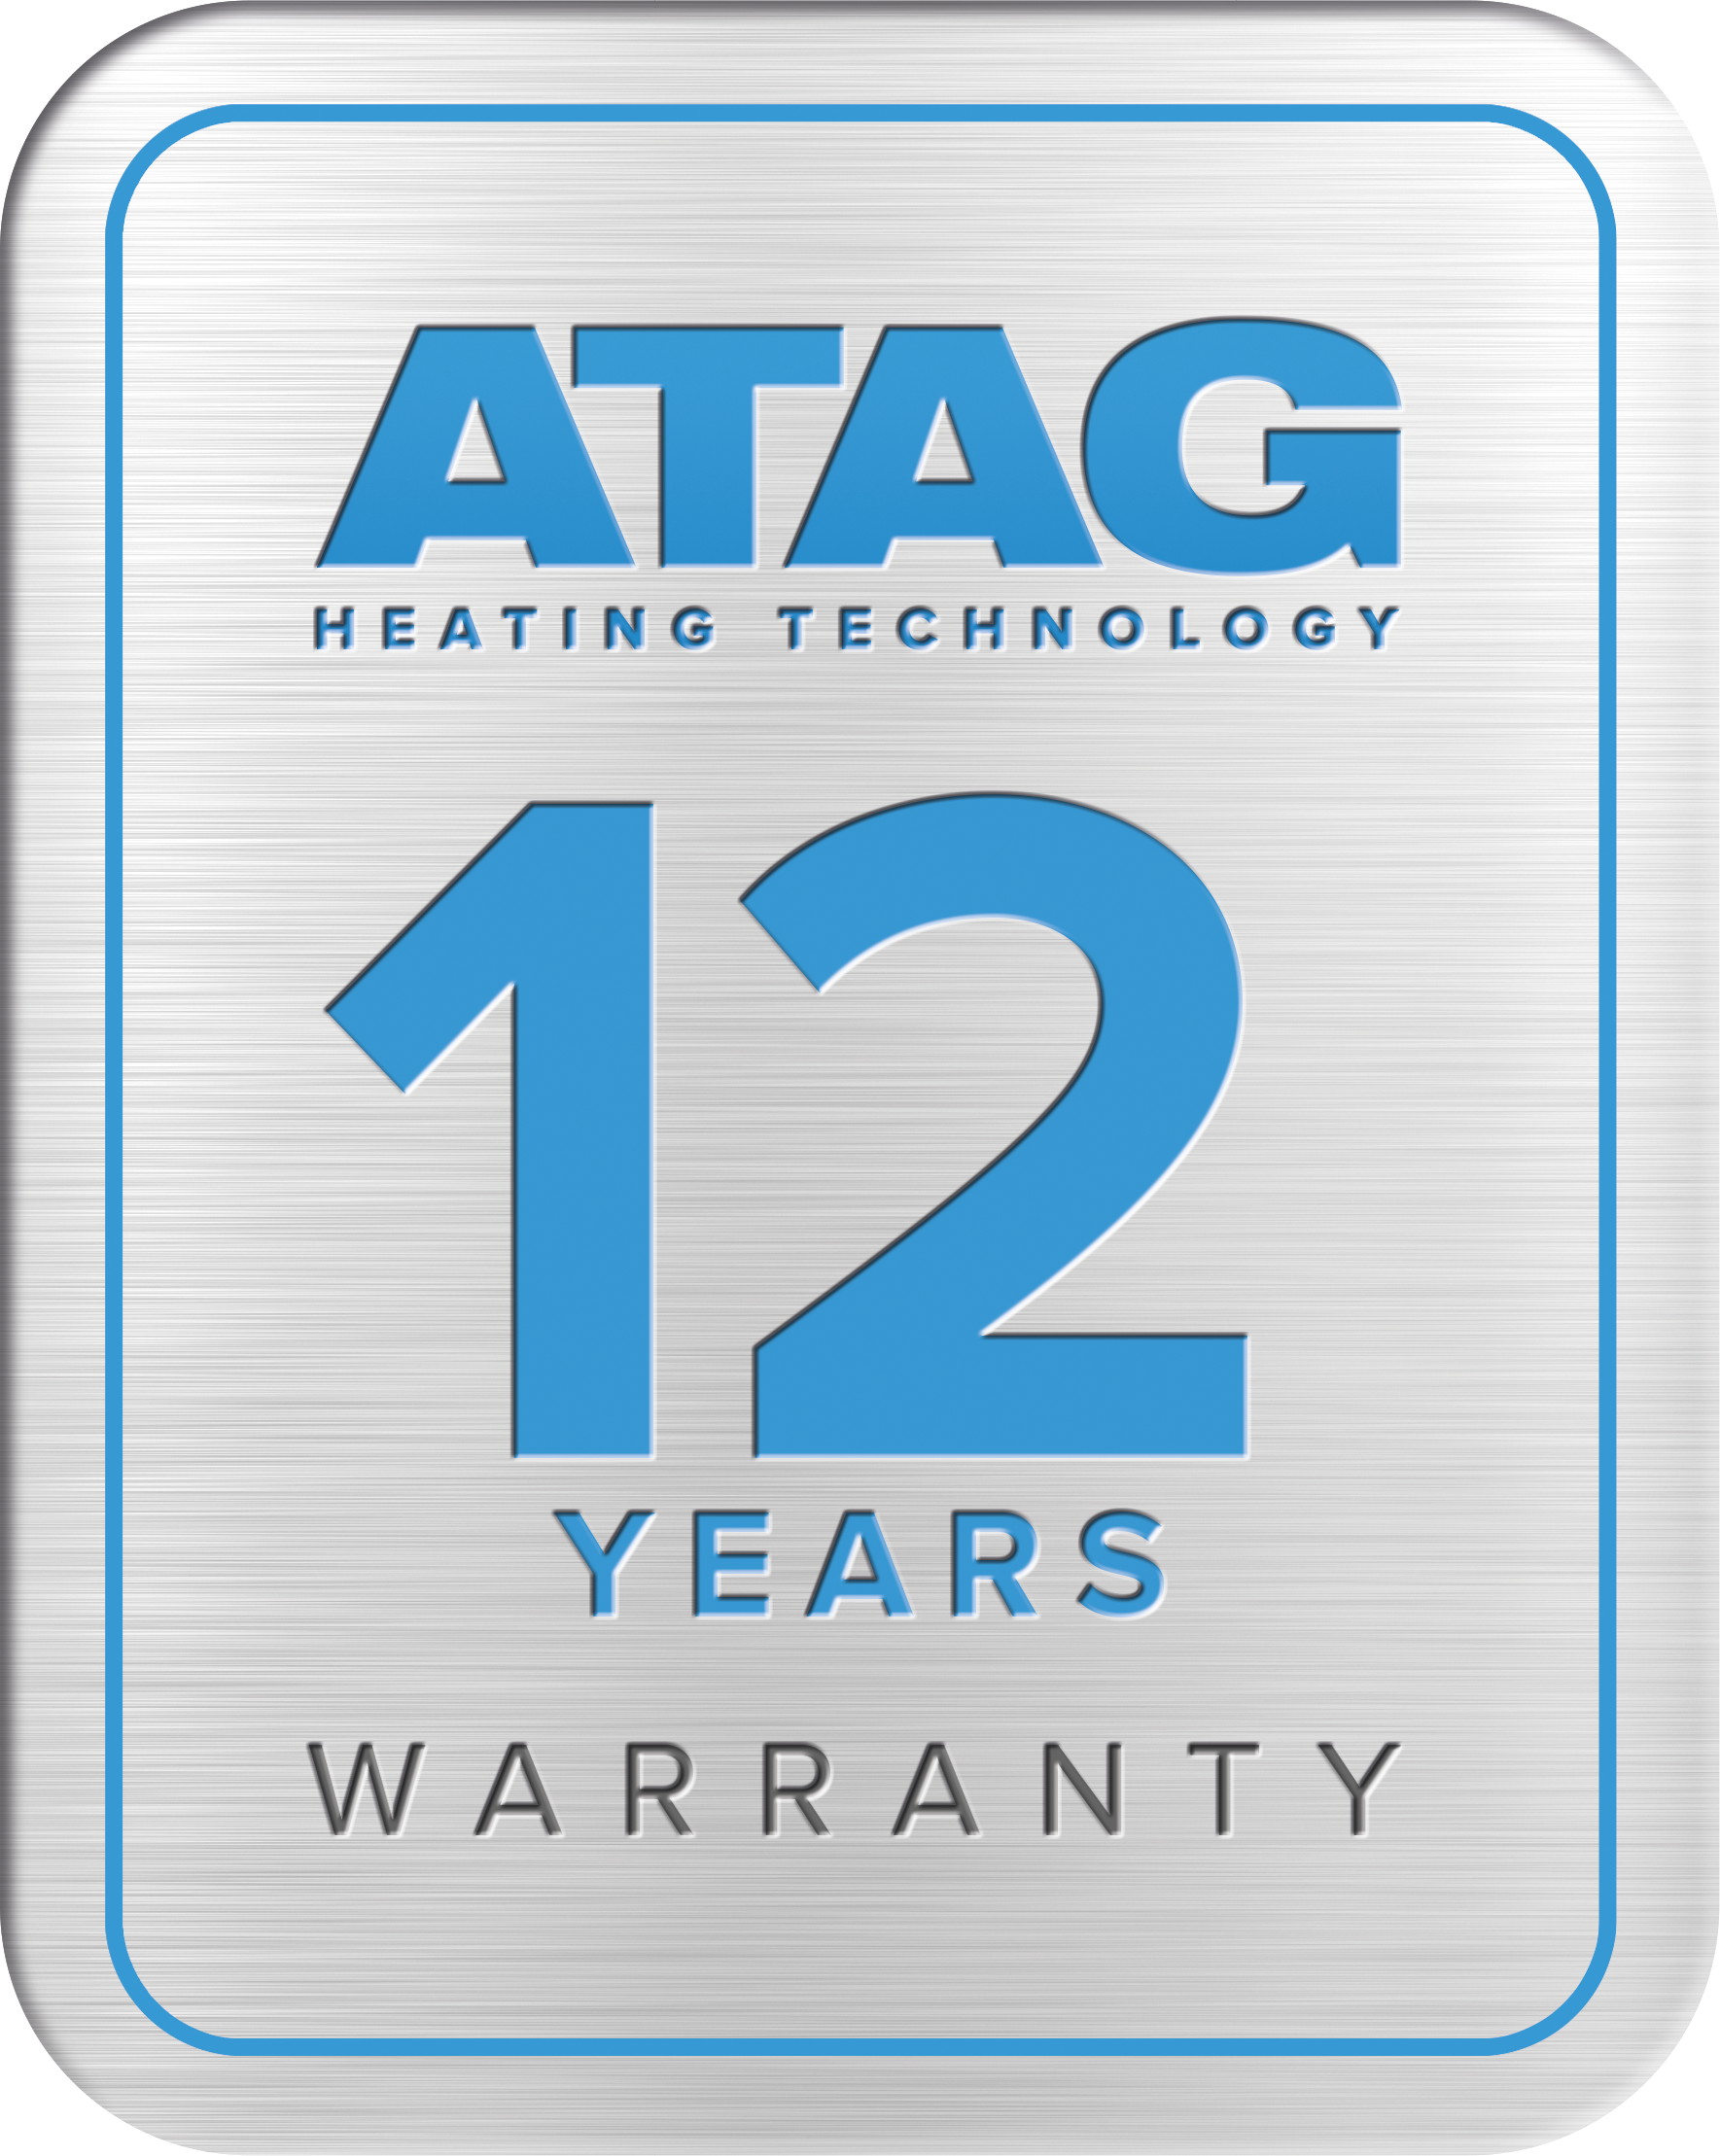 ATAG 12 YEARS Warranty 300 dpi